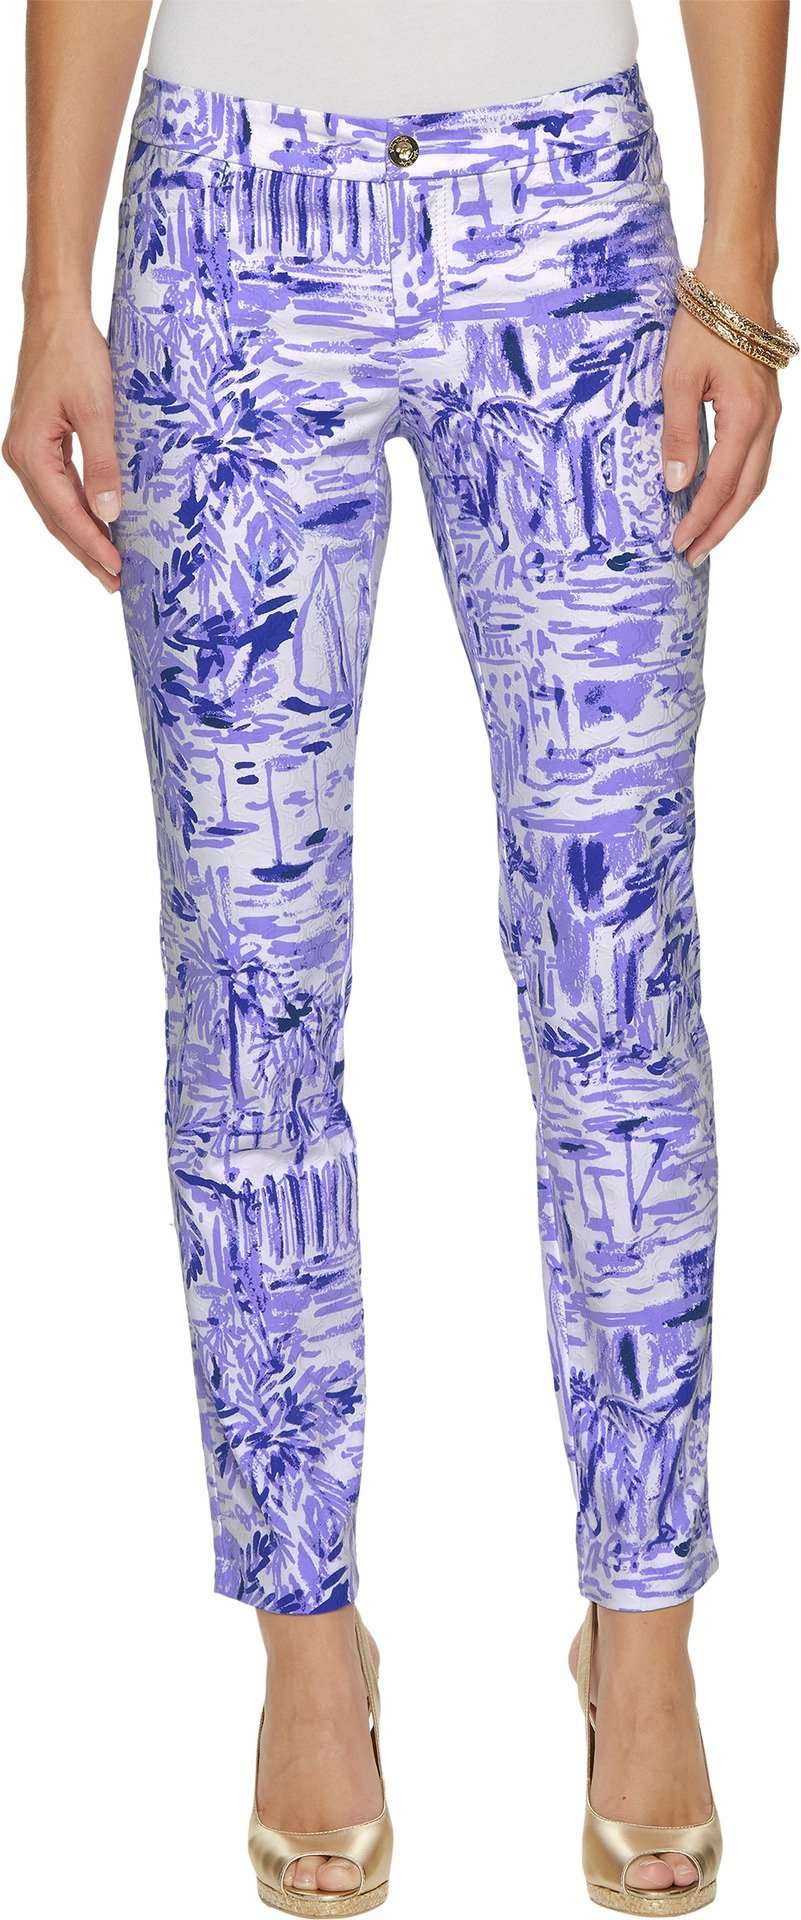 Lilly Pulitzer Women's Kelly Skinny Ankle Pants Lilac Verben Rock The Dock 8 29